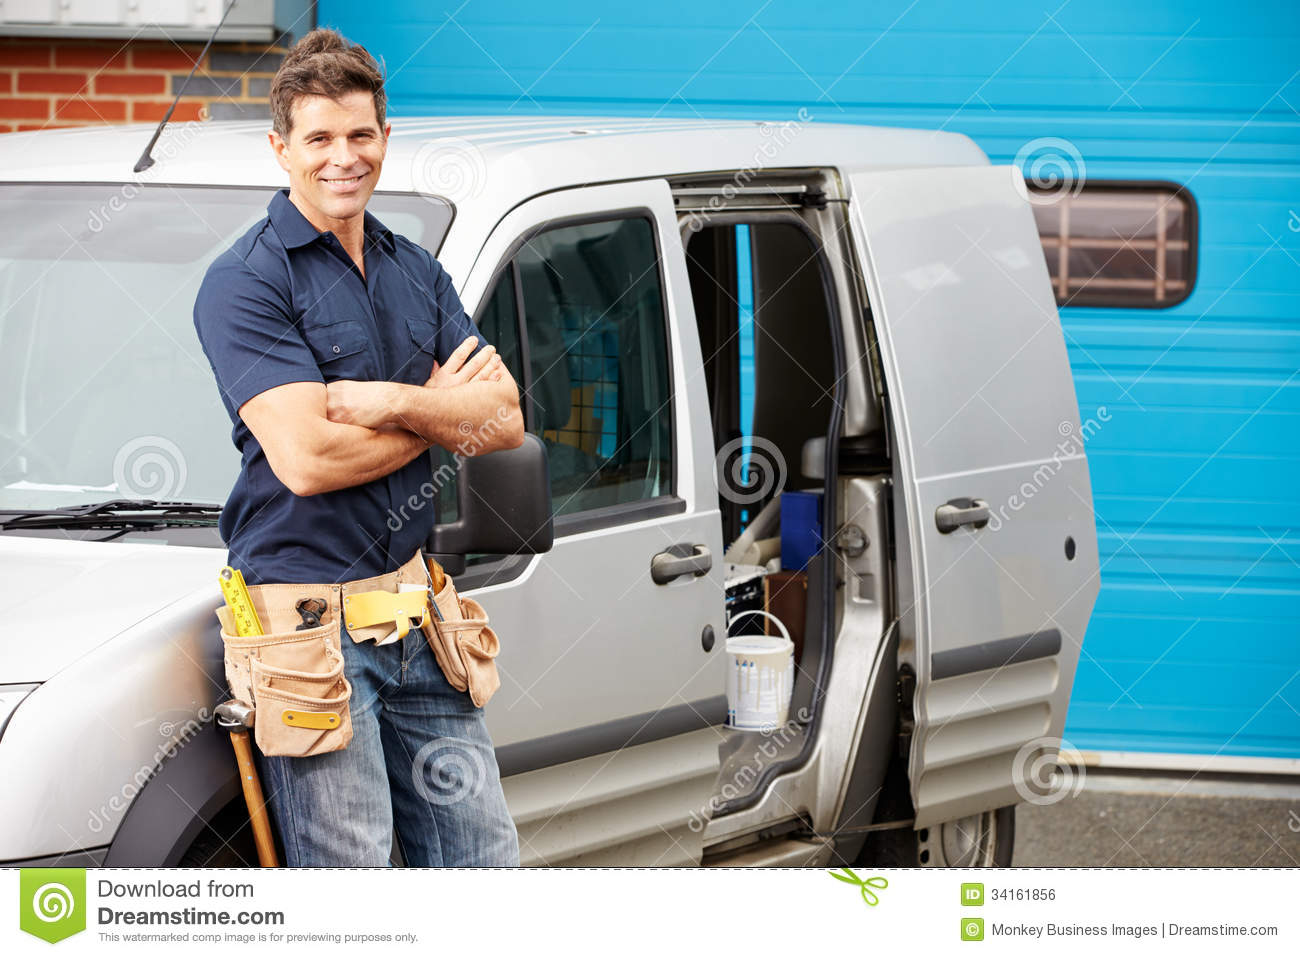 Plumber Or Electrician Standing Next To Van Royalty Free